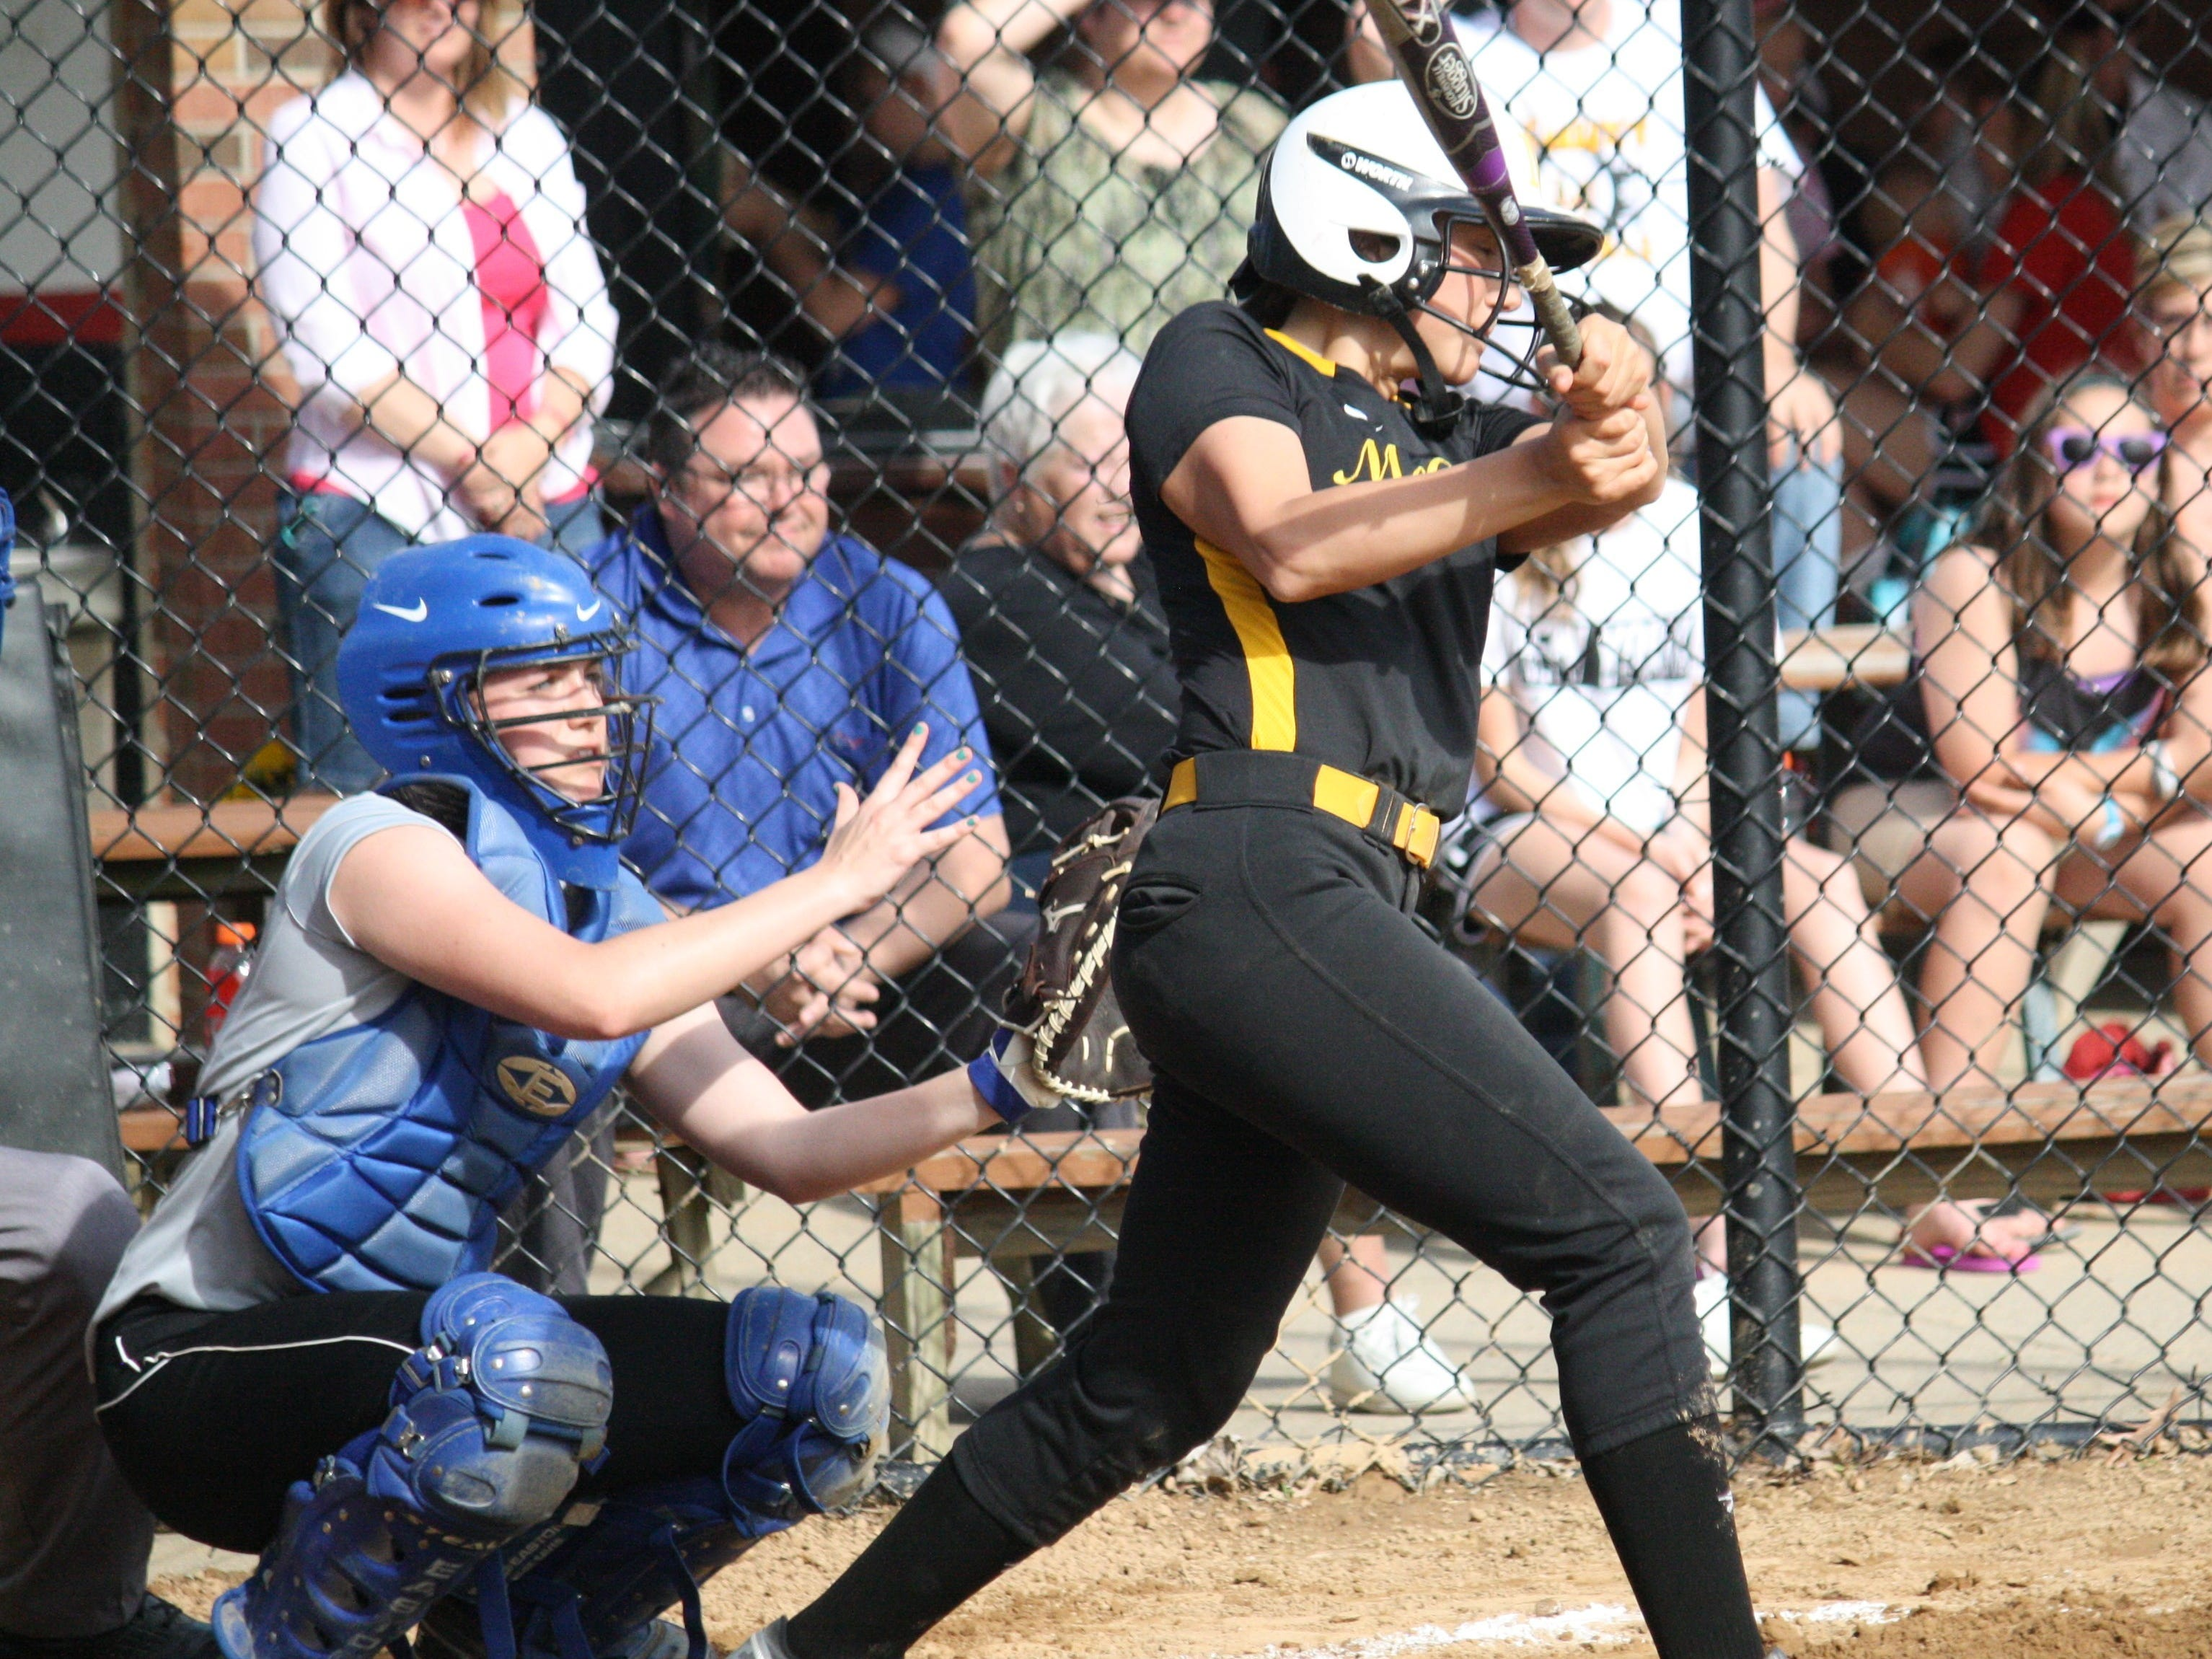 McAuley sophomore Britney Bonno connects for a double against Mercy on April 17 at St. James Field.